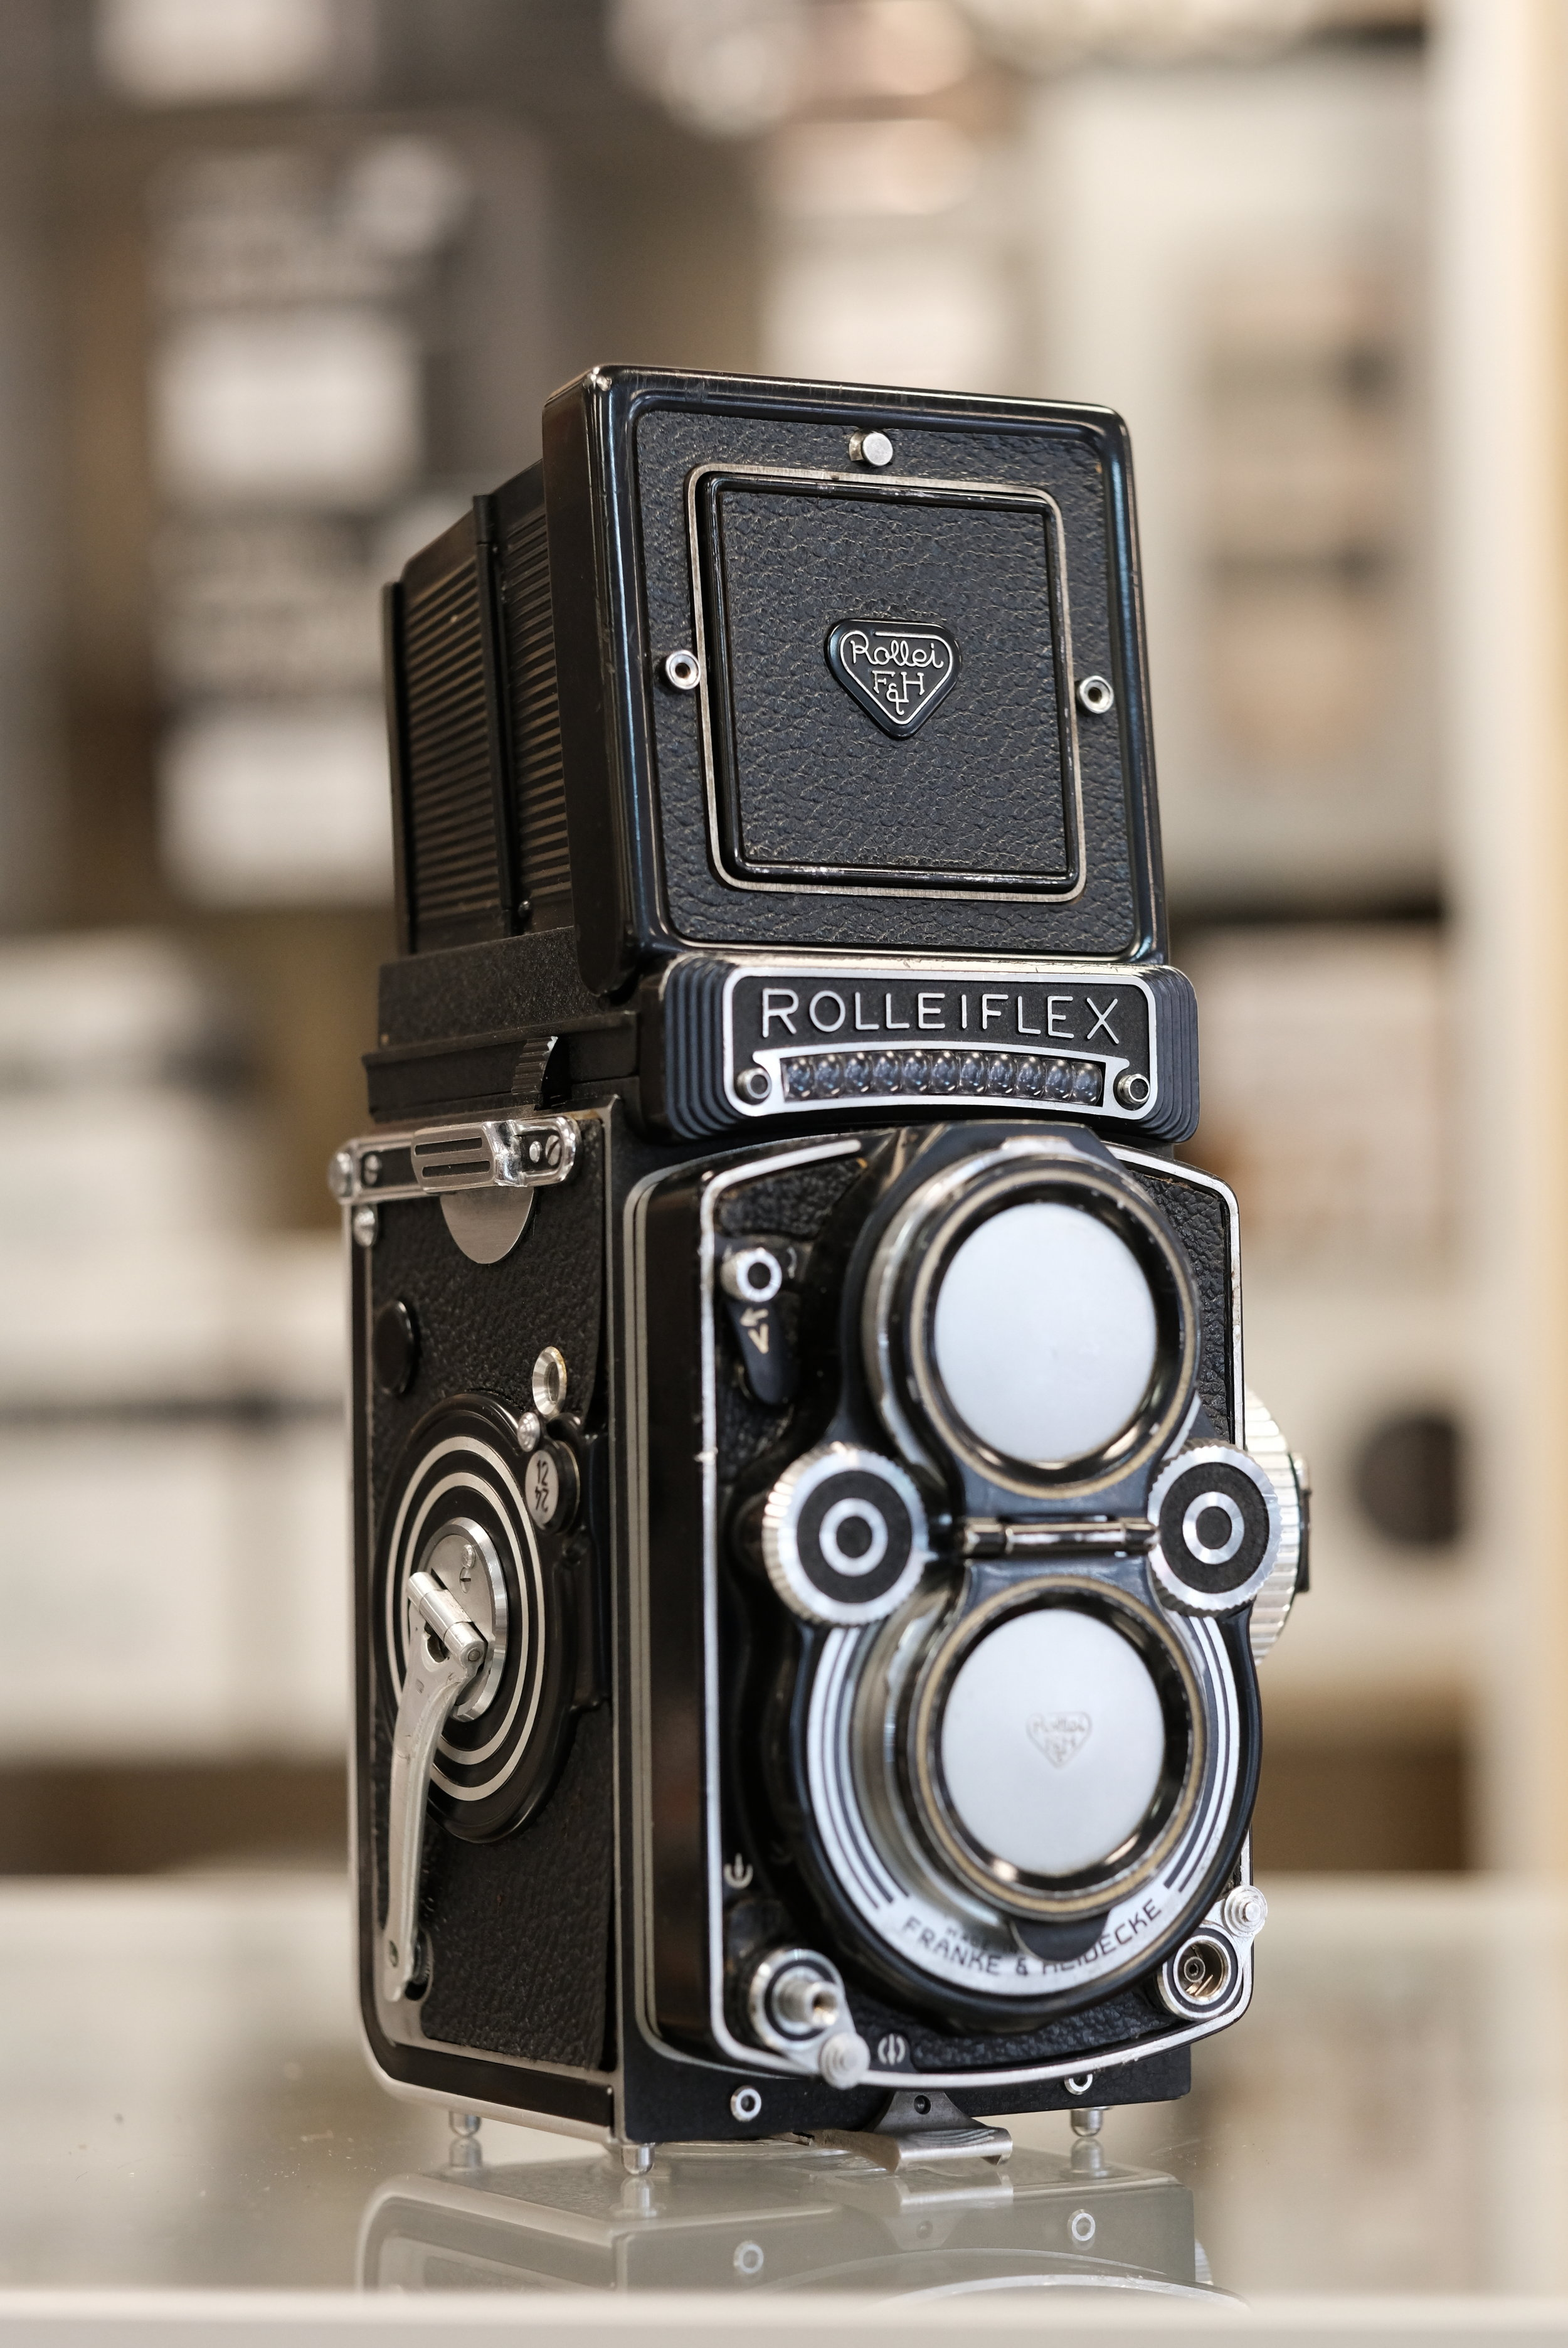 Rolleiflex 3.5F & Accessories - This classic twin lens, medium format camera is in great condition with only a few cosmetic flaws. The meter is non-reliable, but that is expected with any decades old selenium meter and can be overcome with one of the free light meter apps for your smart phone. This camera comes complete with a brown leather case, set of 3 Rolleinar close up lenses and the original owner's manual, all of which are in remarkably good shape.